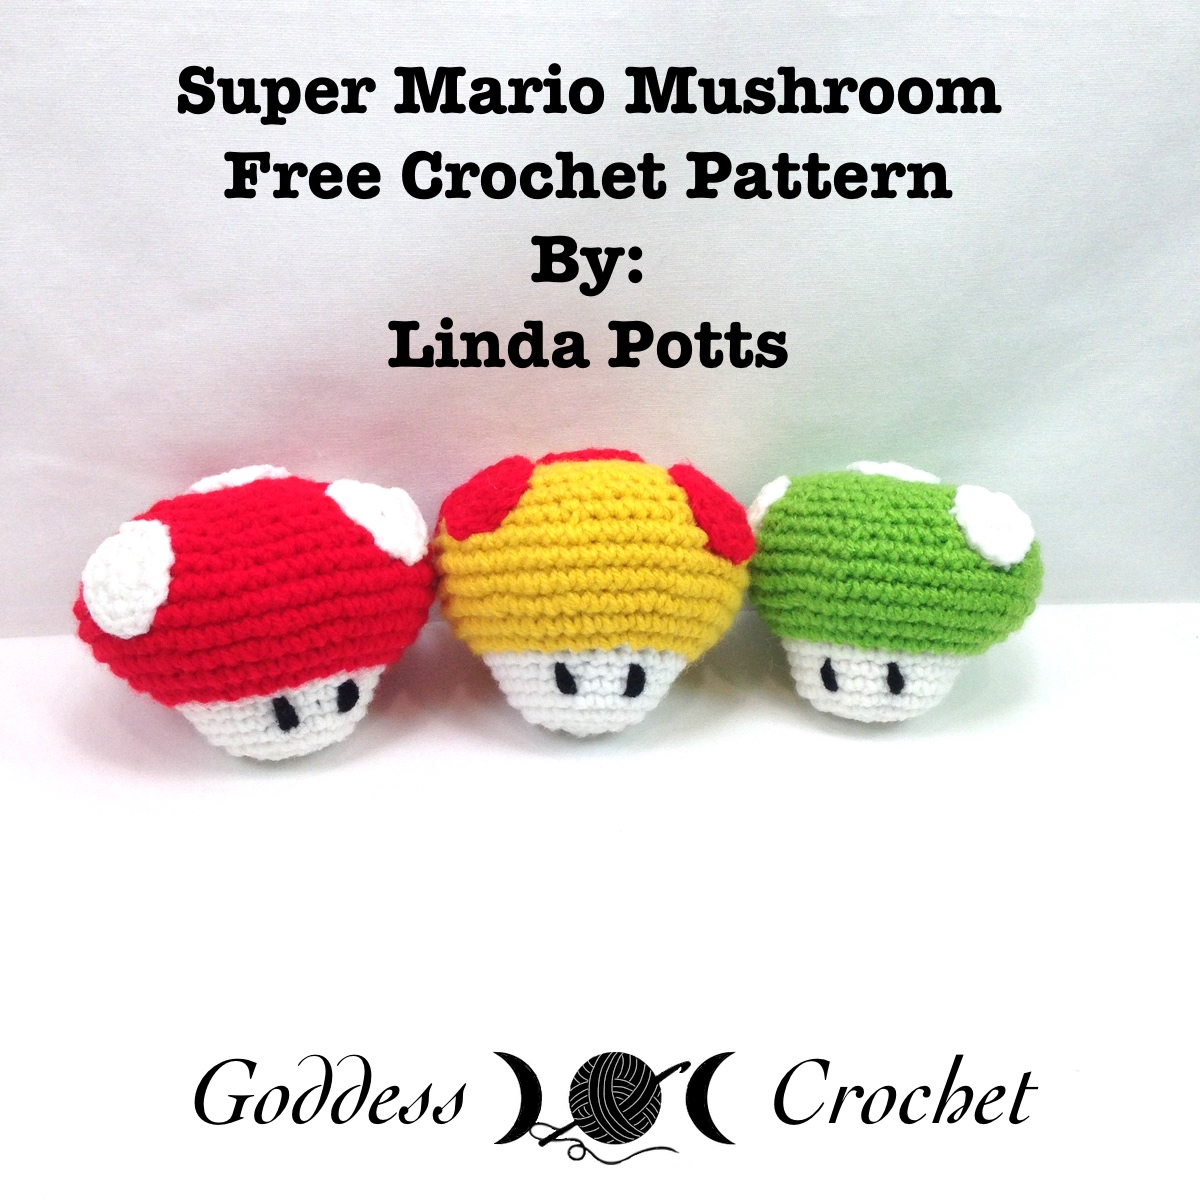 Super Mario Mushroom Free Crochet Pattern Review ...